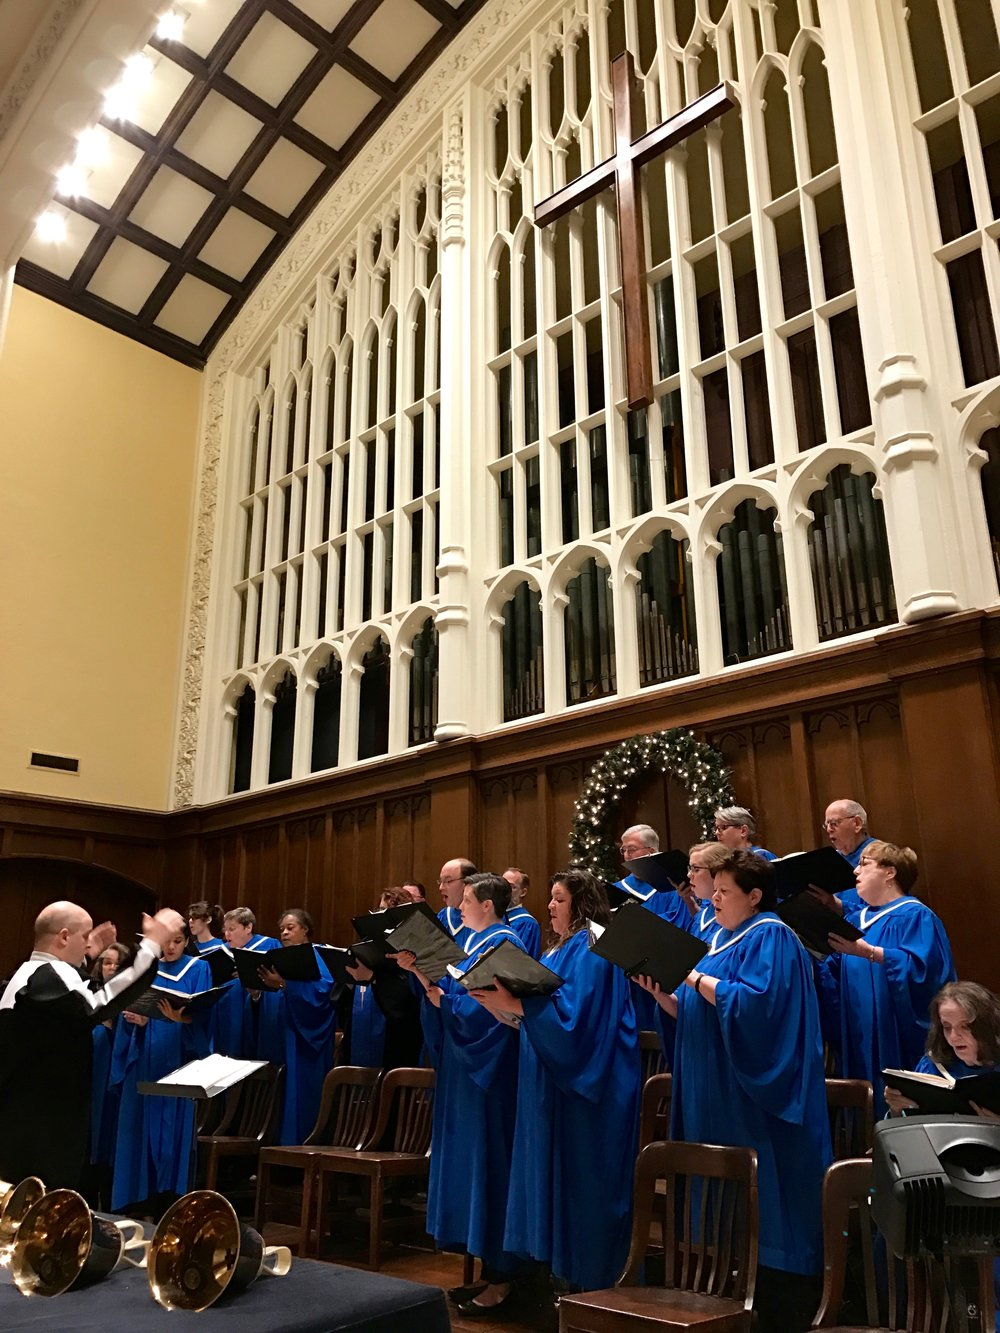 The choir singing during the annual Advent Lessons and Carols service.